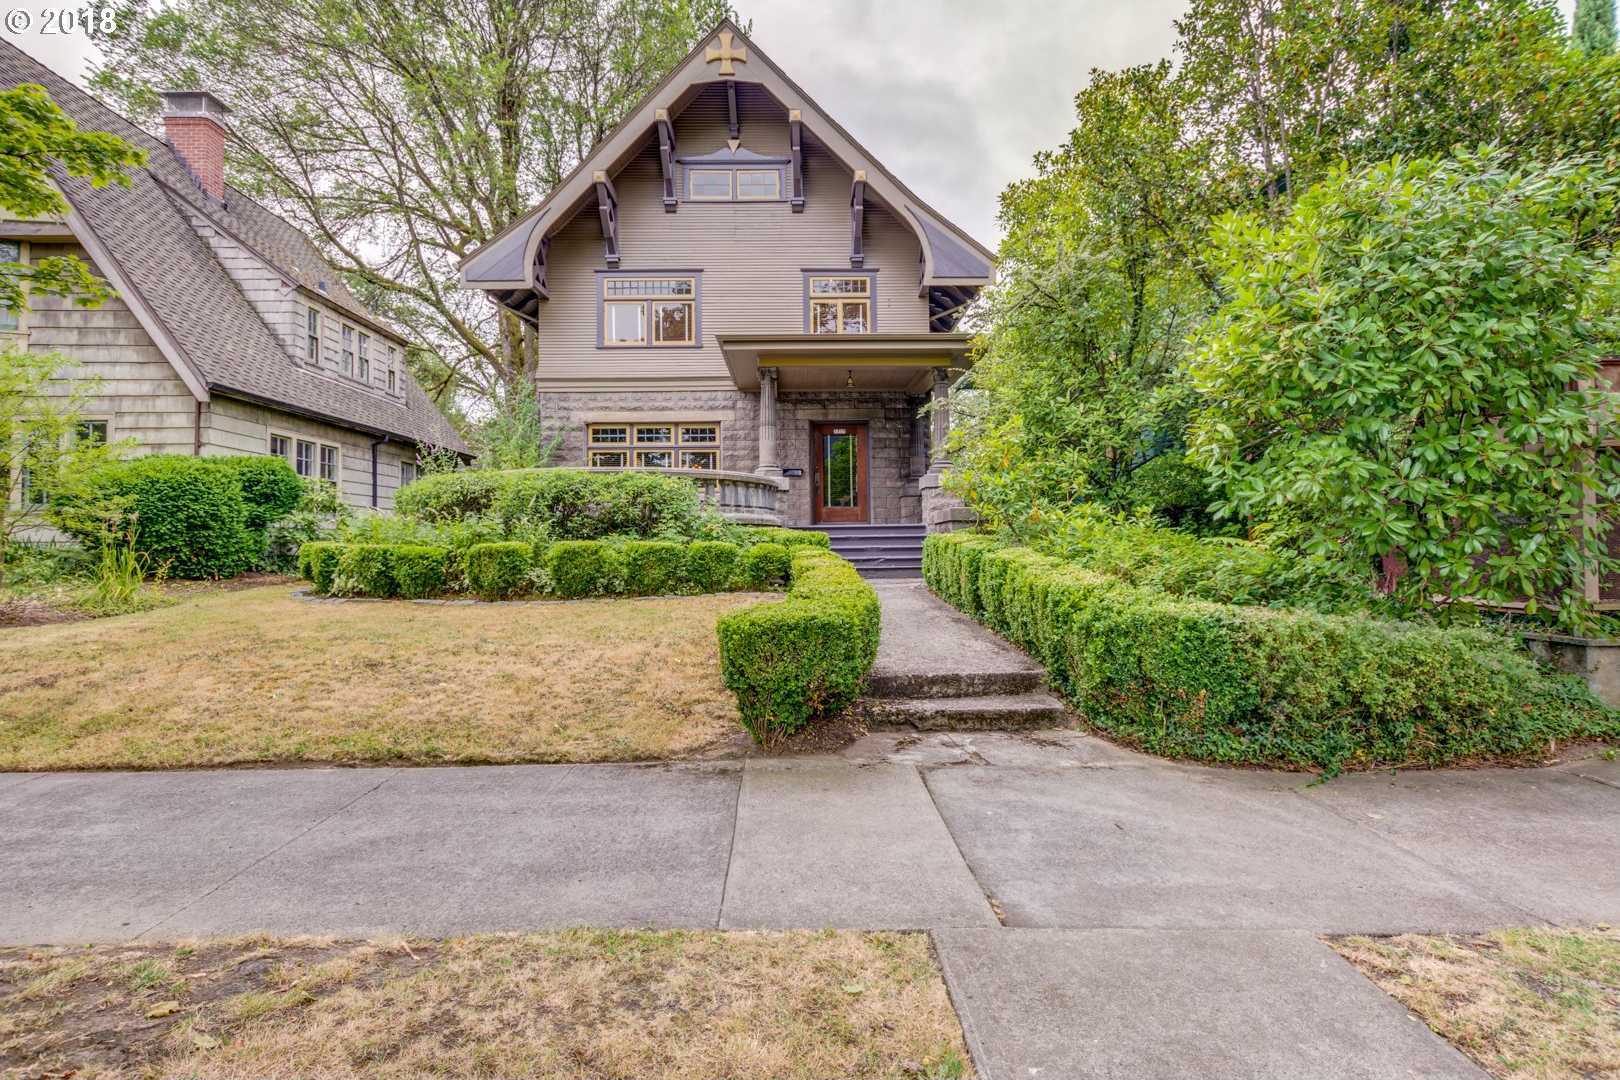 $1,250,000 - 4Br/2Ba -  for Sale in Portland